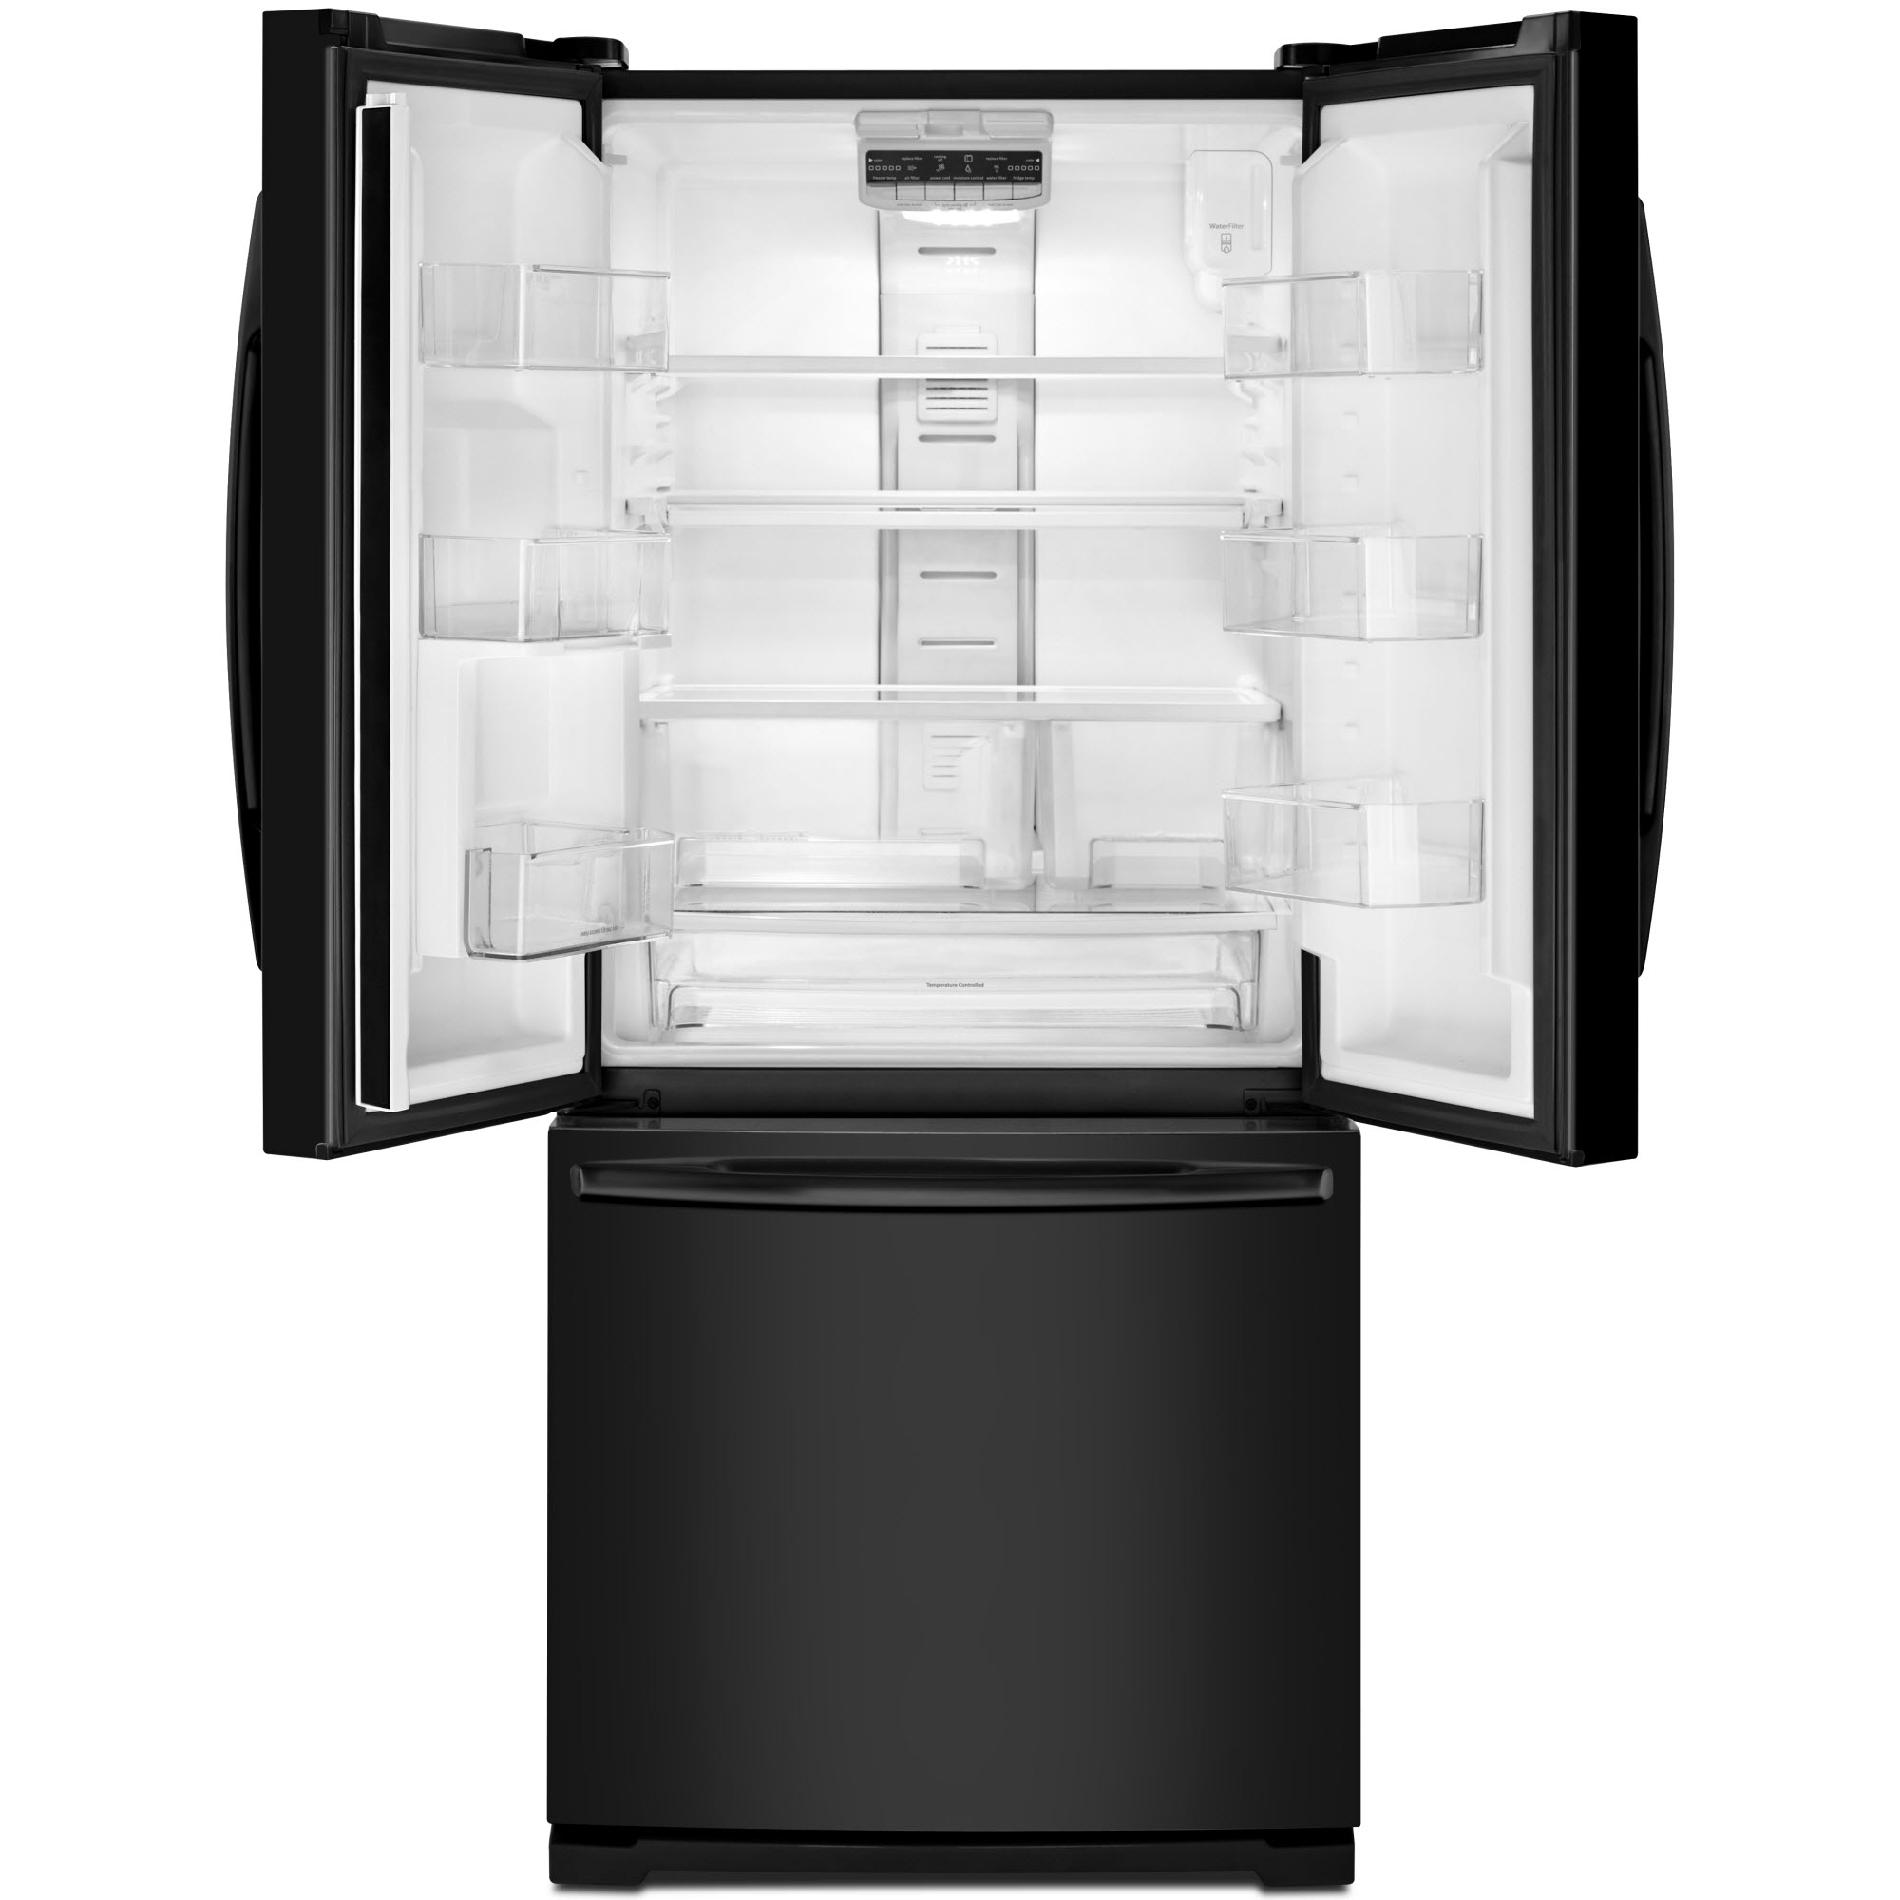 Maytag 20 cu. ft. French-Door Refrigerator w/ Strongbox™ Door Bins - Black